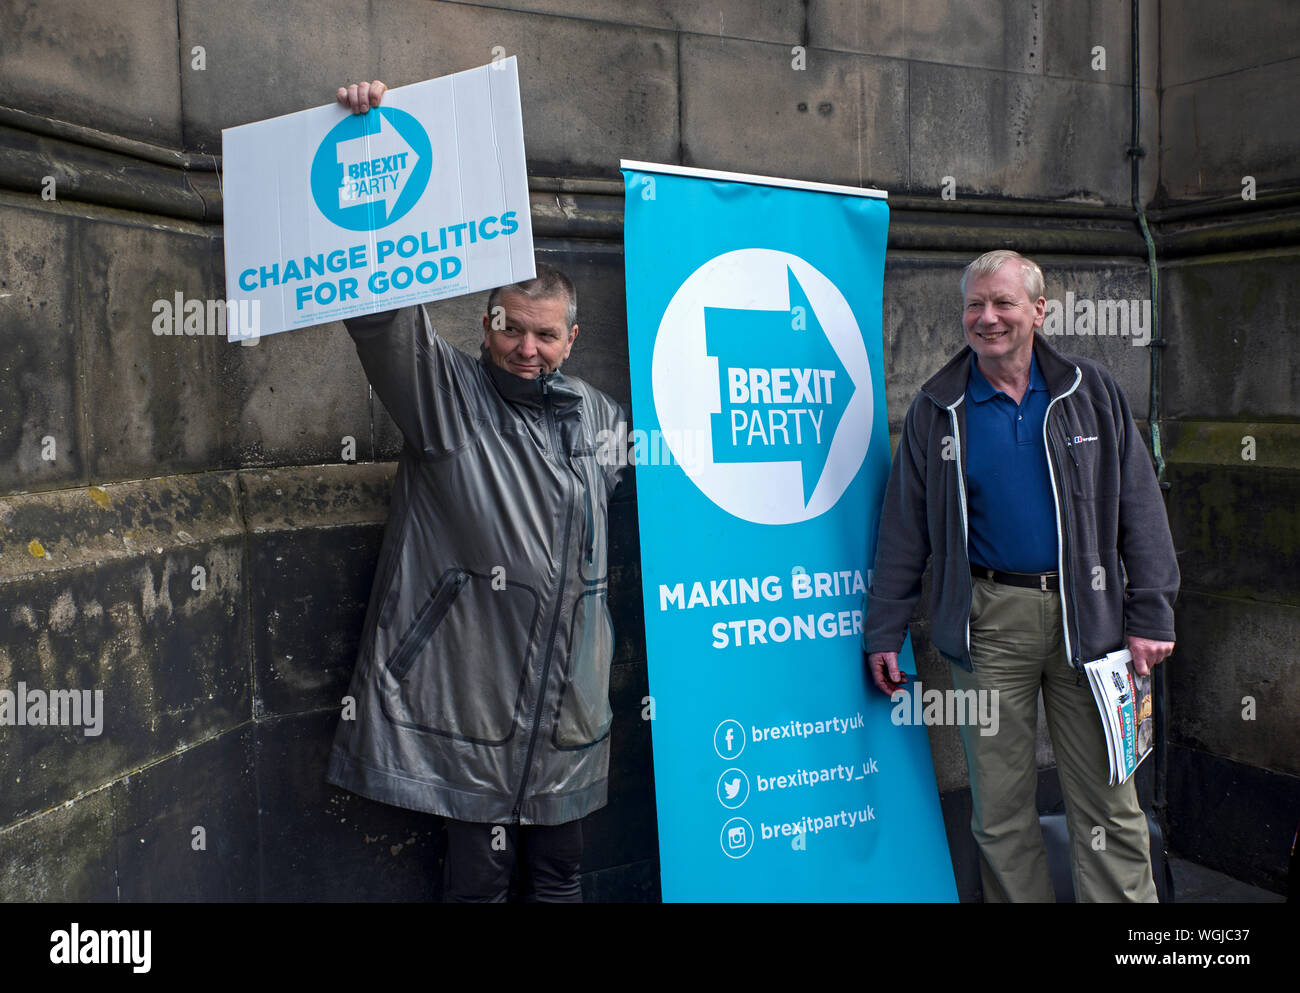 Edinburgh, Scotland, 31st August 2019. A counter demonstration by 2 Brexit Party Members against the European Movement in Scotland. Stock Photo